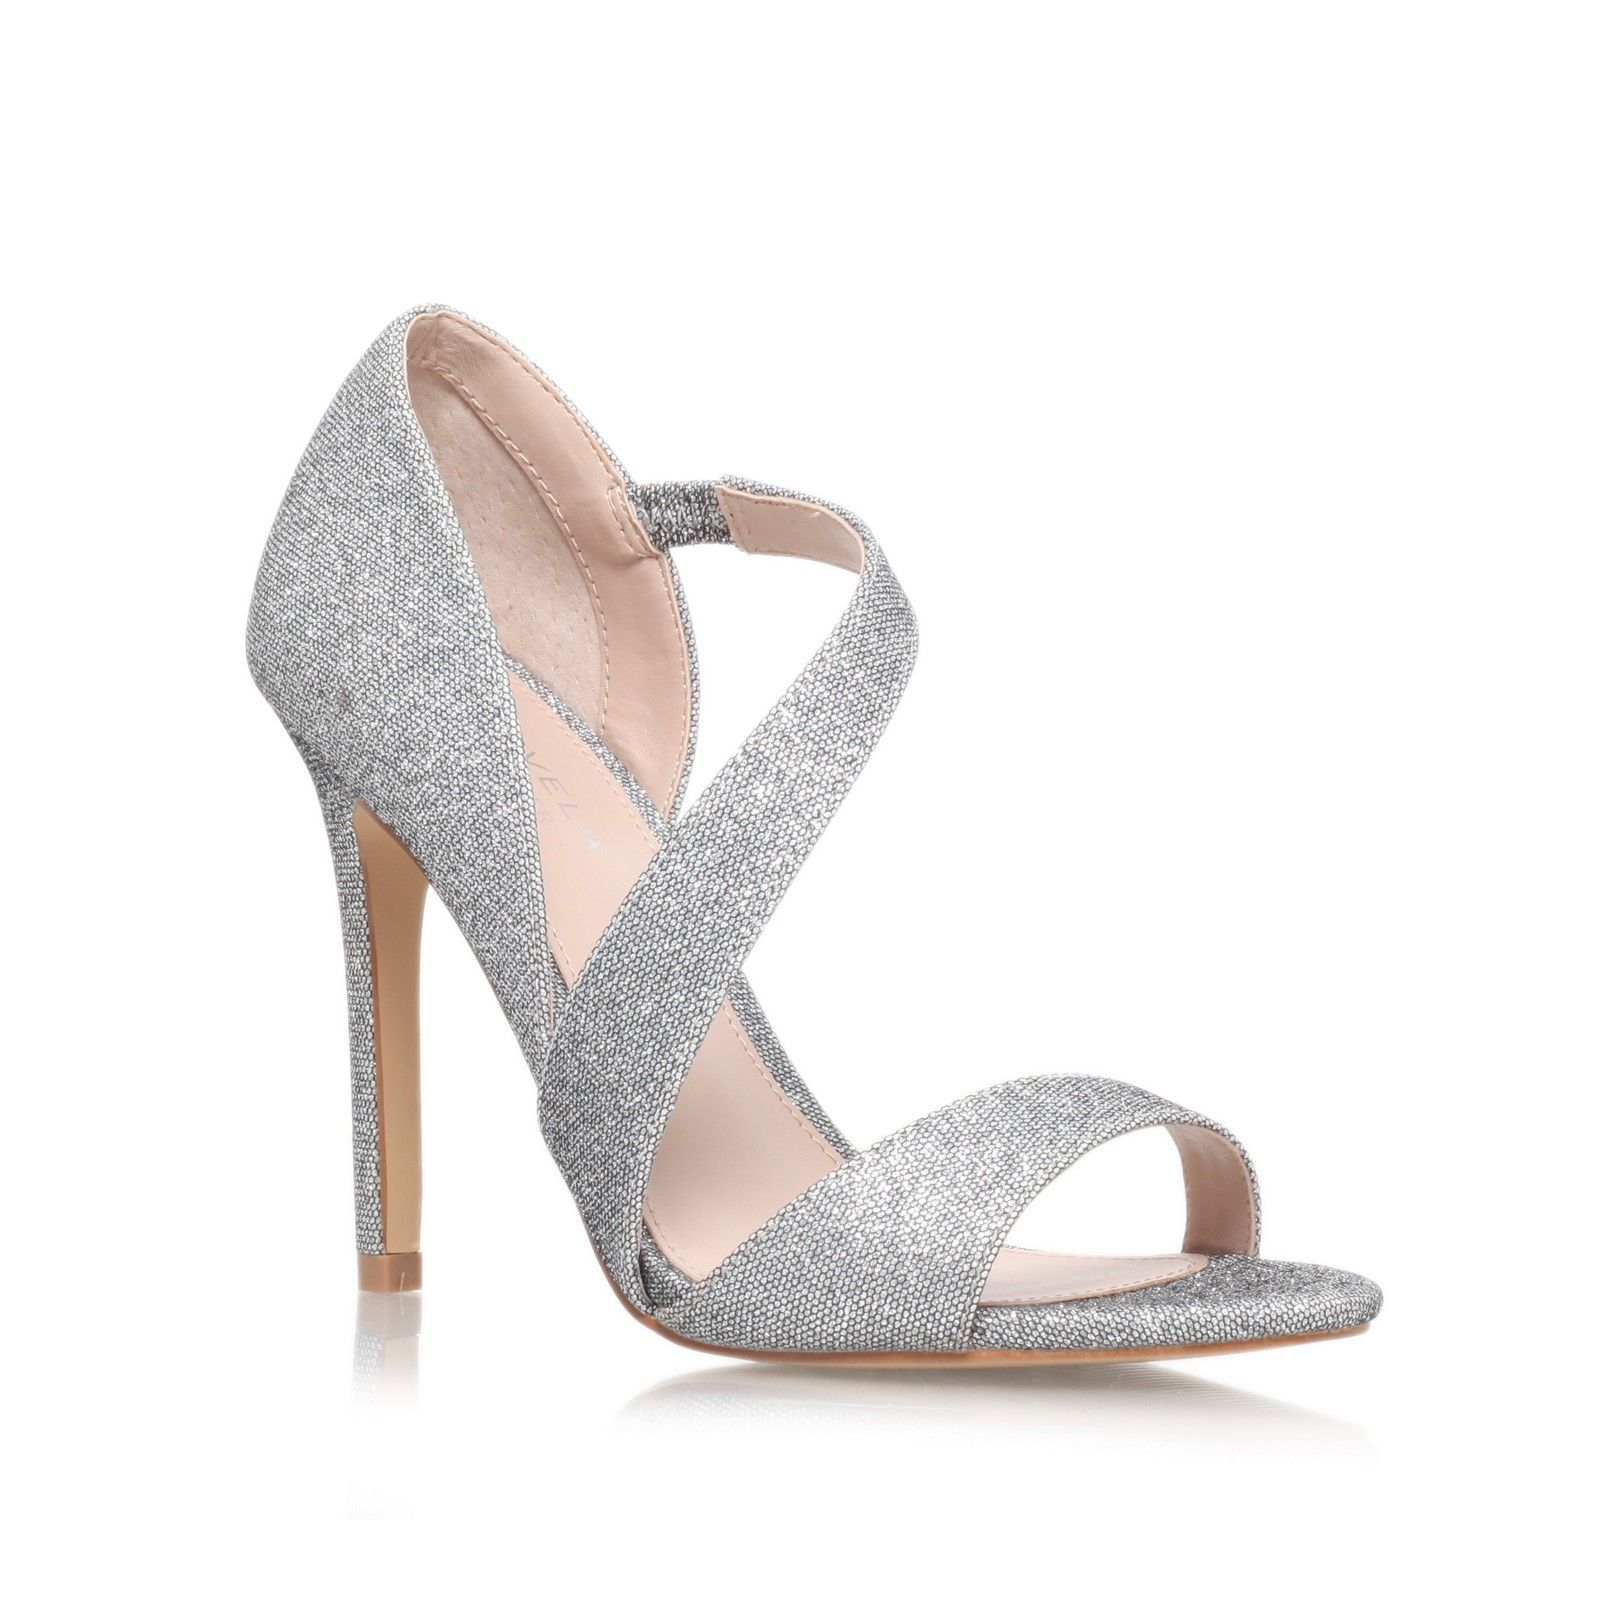 gee silver high heel sandals from Carvela Kurt Geiger | Raphaelle ...